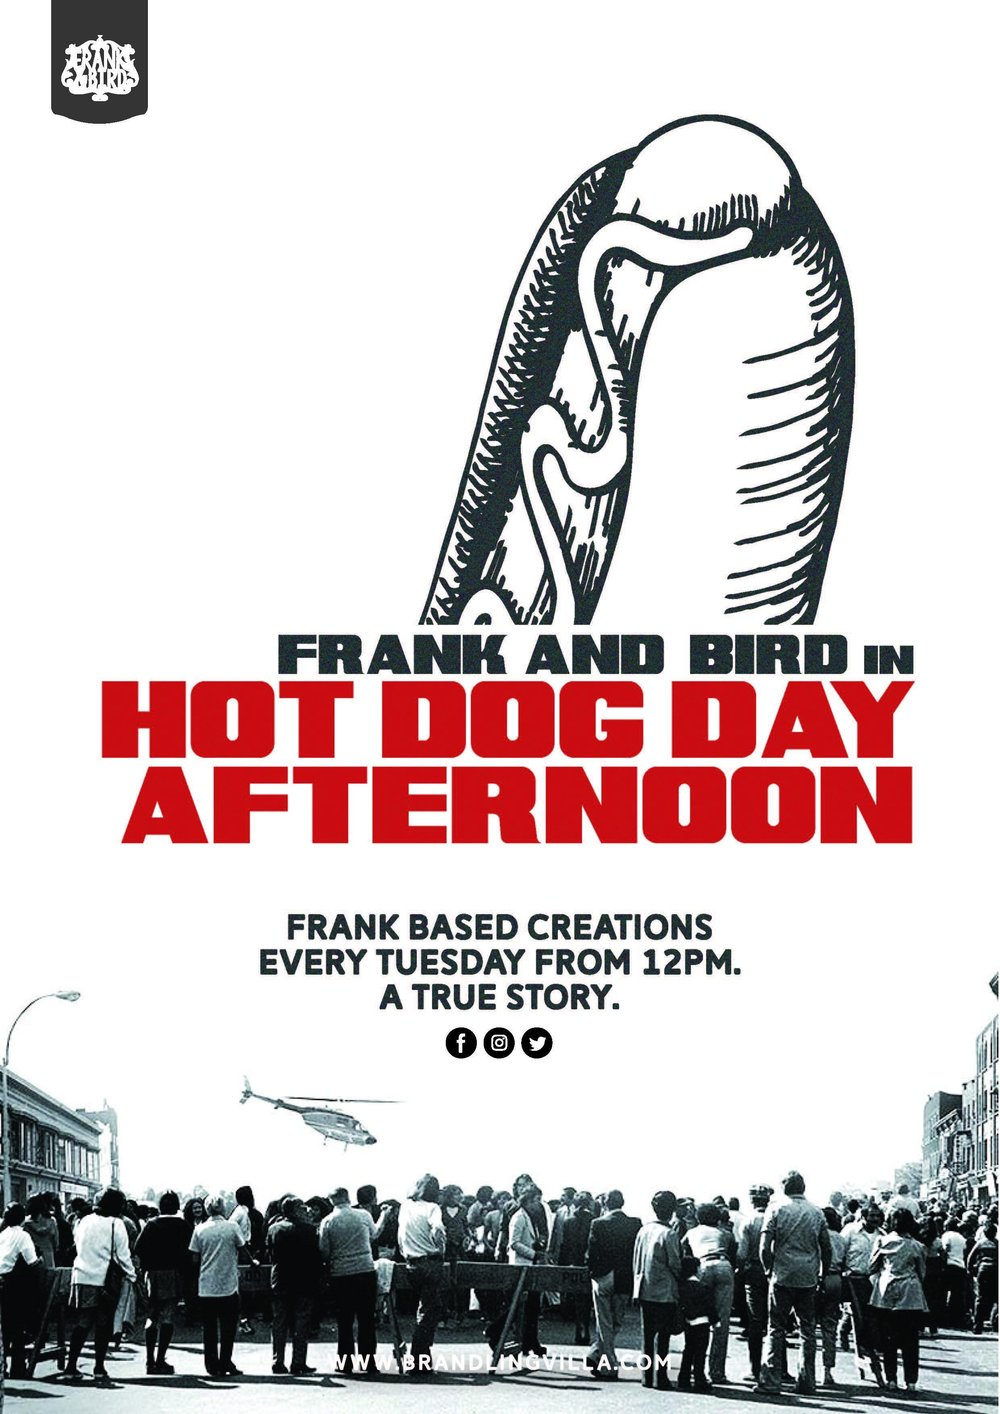 HOT DOG DAY AFTERNOON_Page_1.jpg